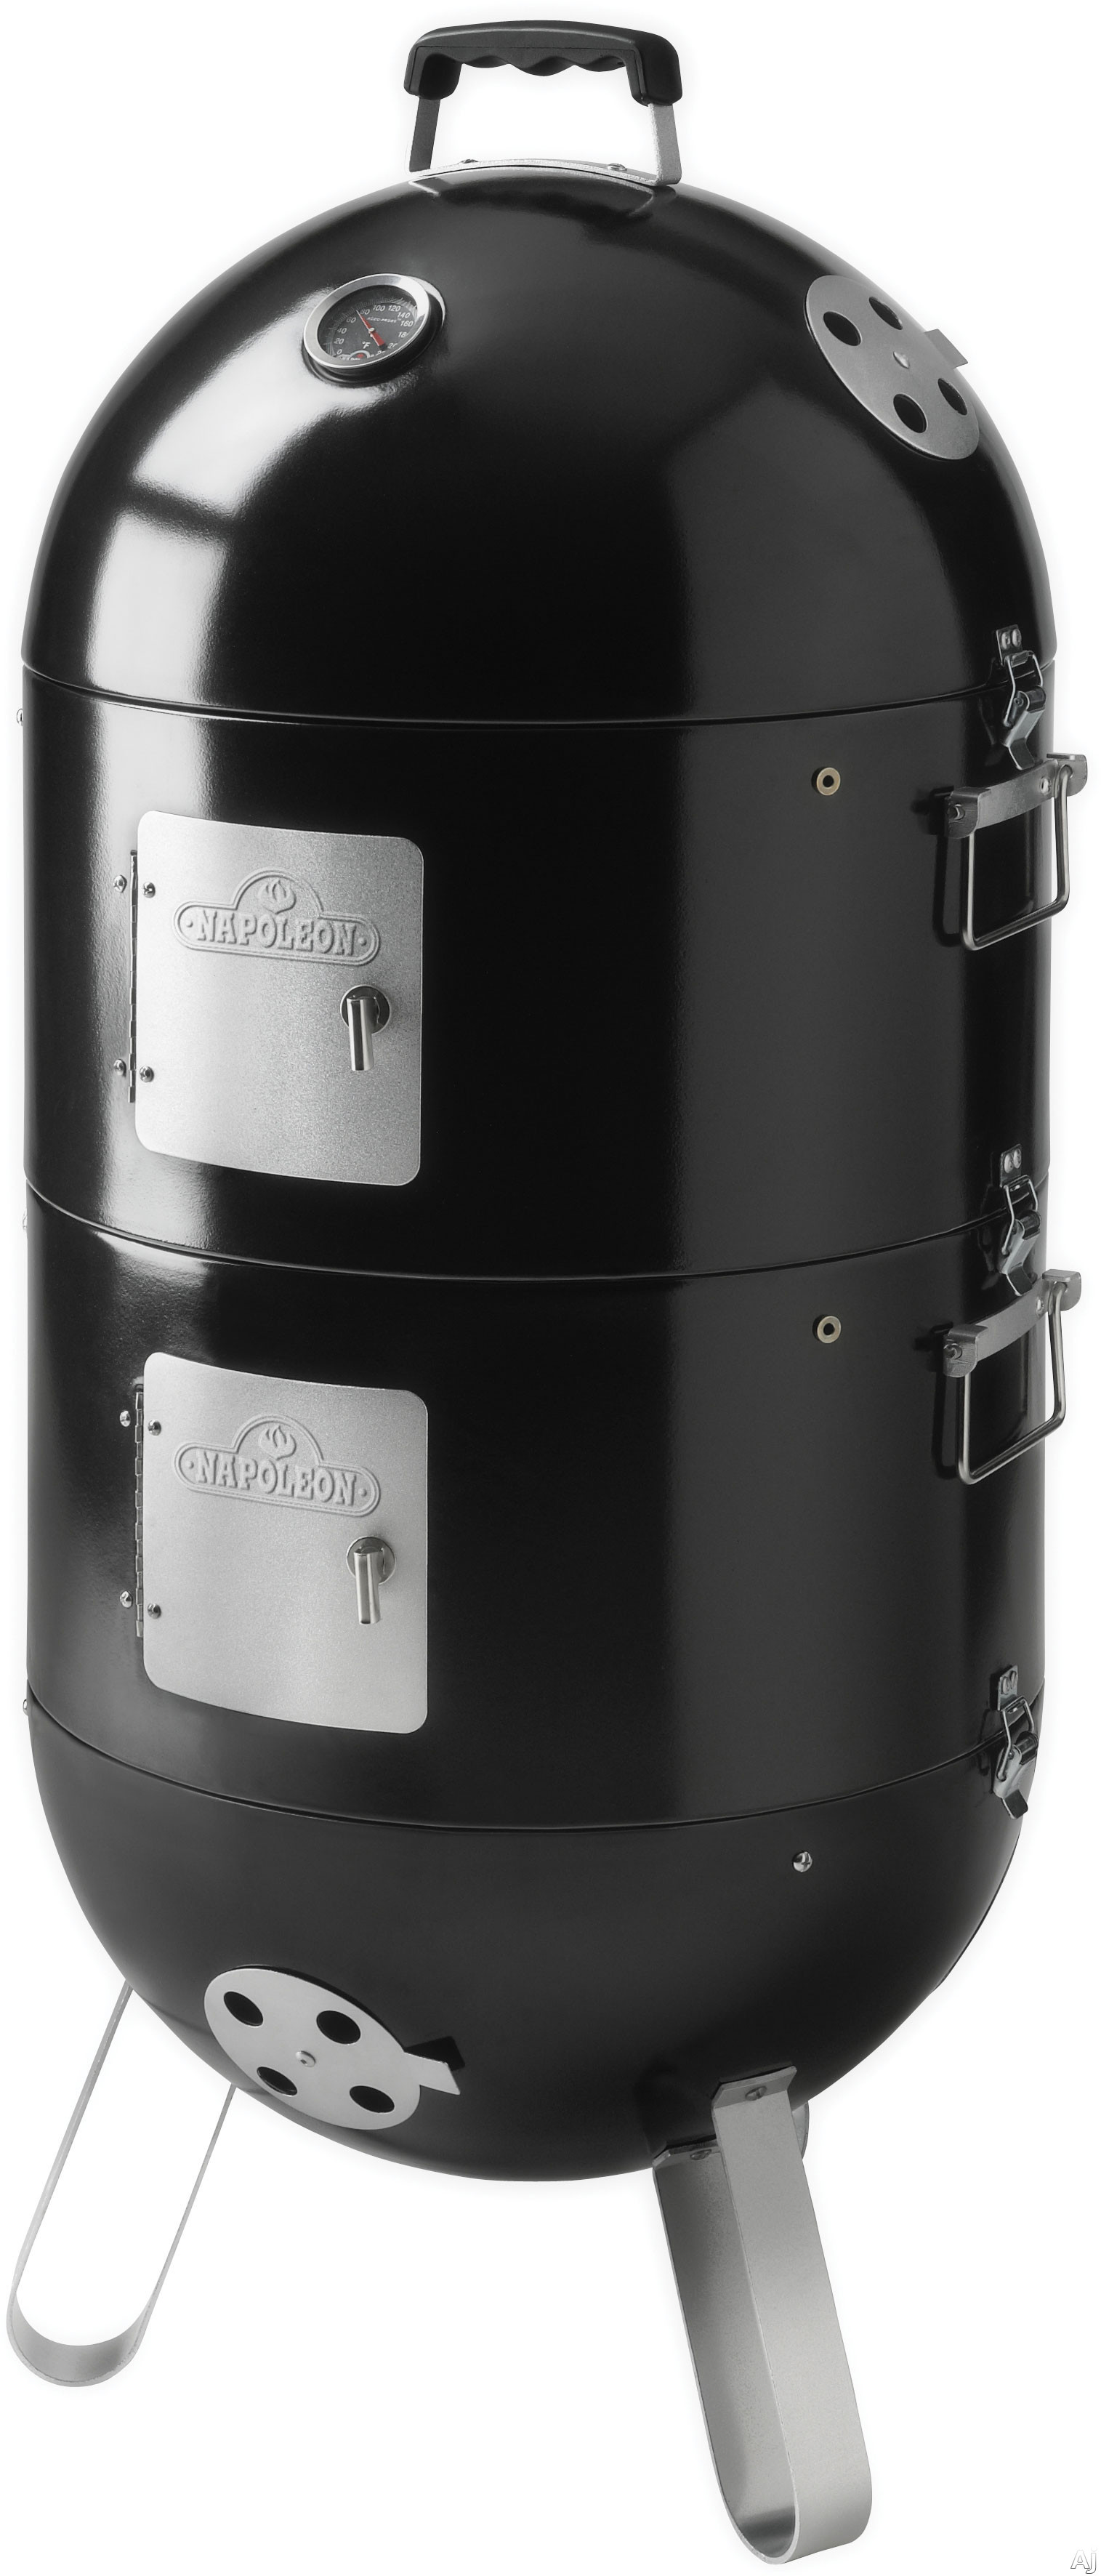 Napoleon Apollo Series AS200K1 3-in-1 Charcoal and Water Smoker with 3 Cooking Chambers, ACCU-Probe Temperature Gauge, Meat Hooks, 16 Inch Cooking Grid, Multiple Vents and Easy Access Doors